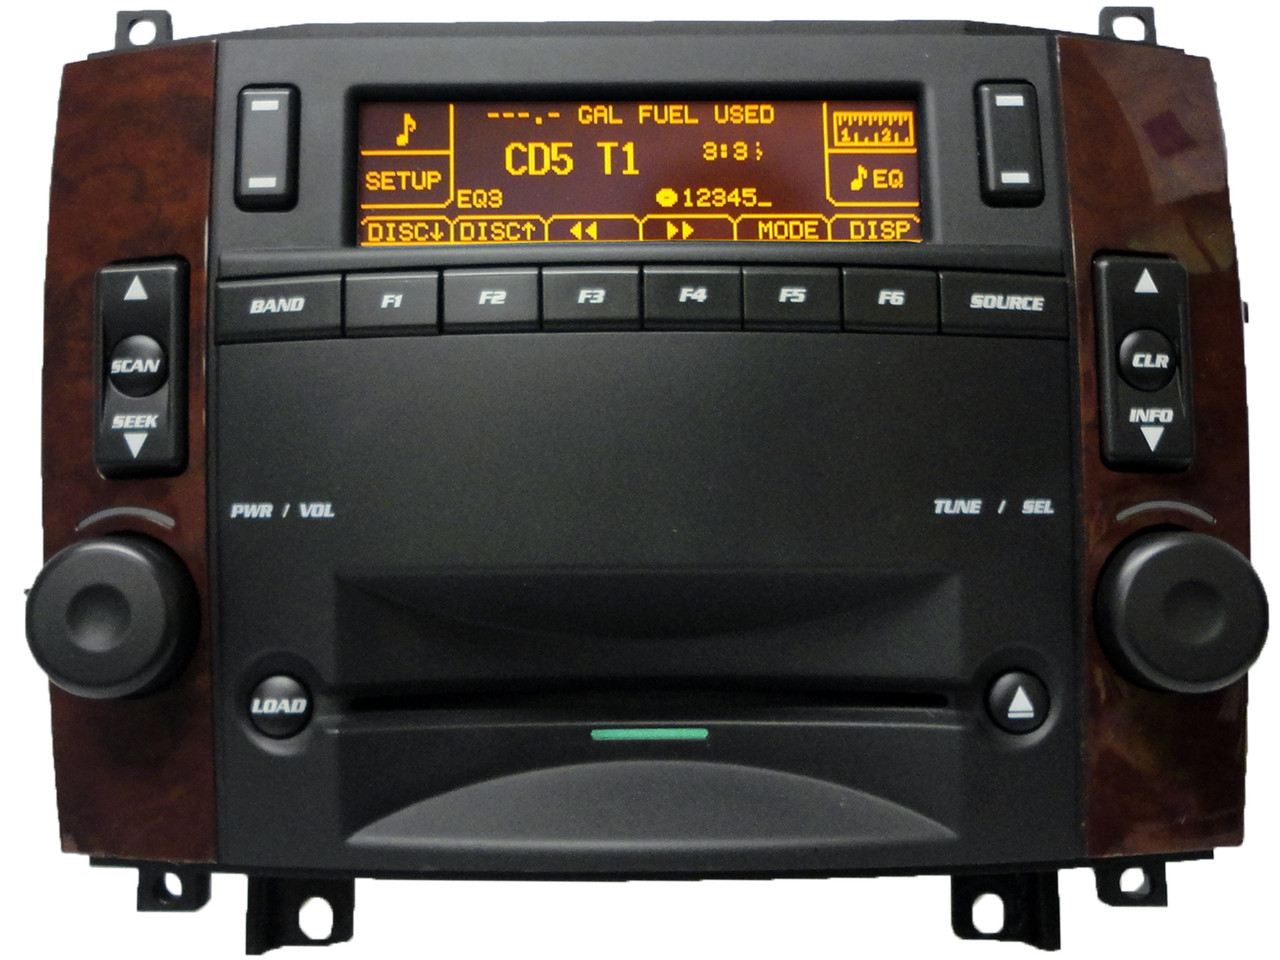 05 06 07 cadillac cts srx radio stereo 6 disc cd player. Black Bedroom Furniture Sets. Home Design Ideas